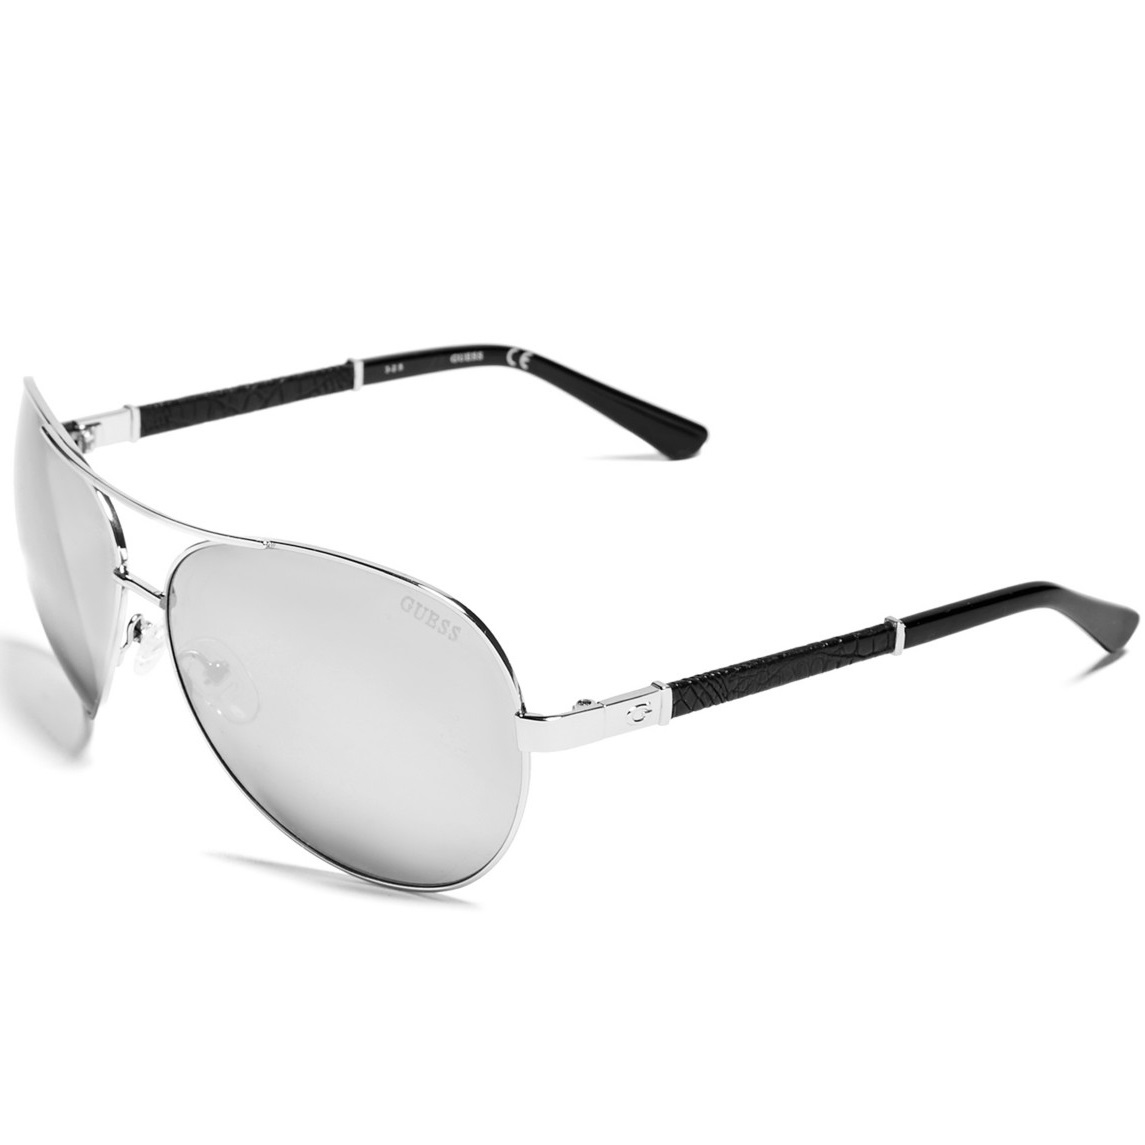 Sunglasses Guess GF6015 10C